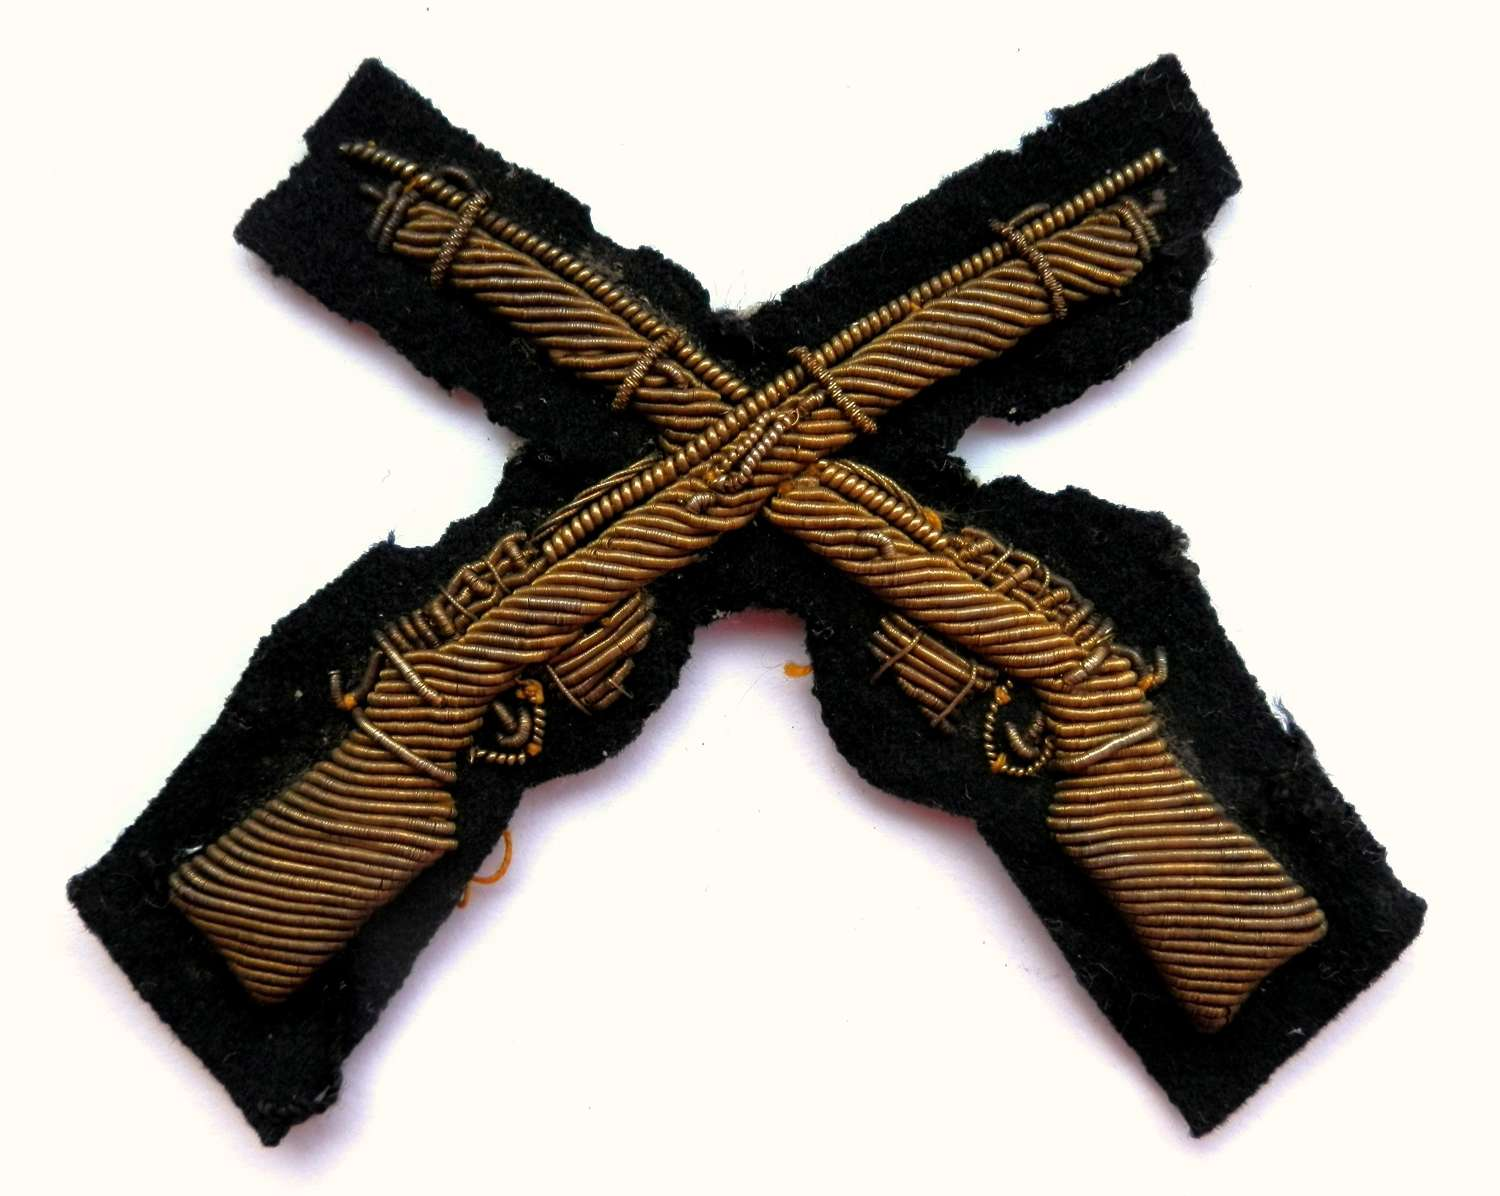 Period Marksman's Trade Patch.